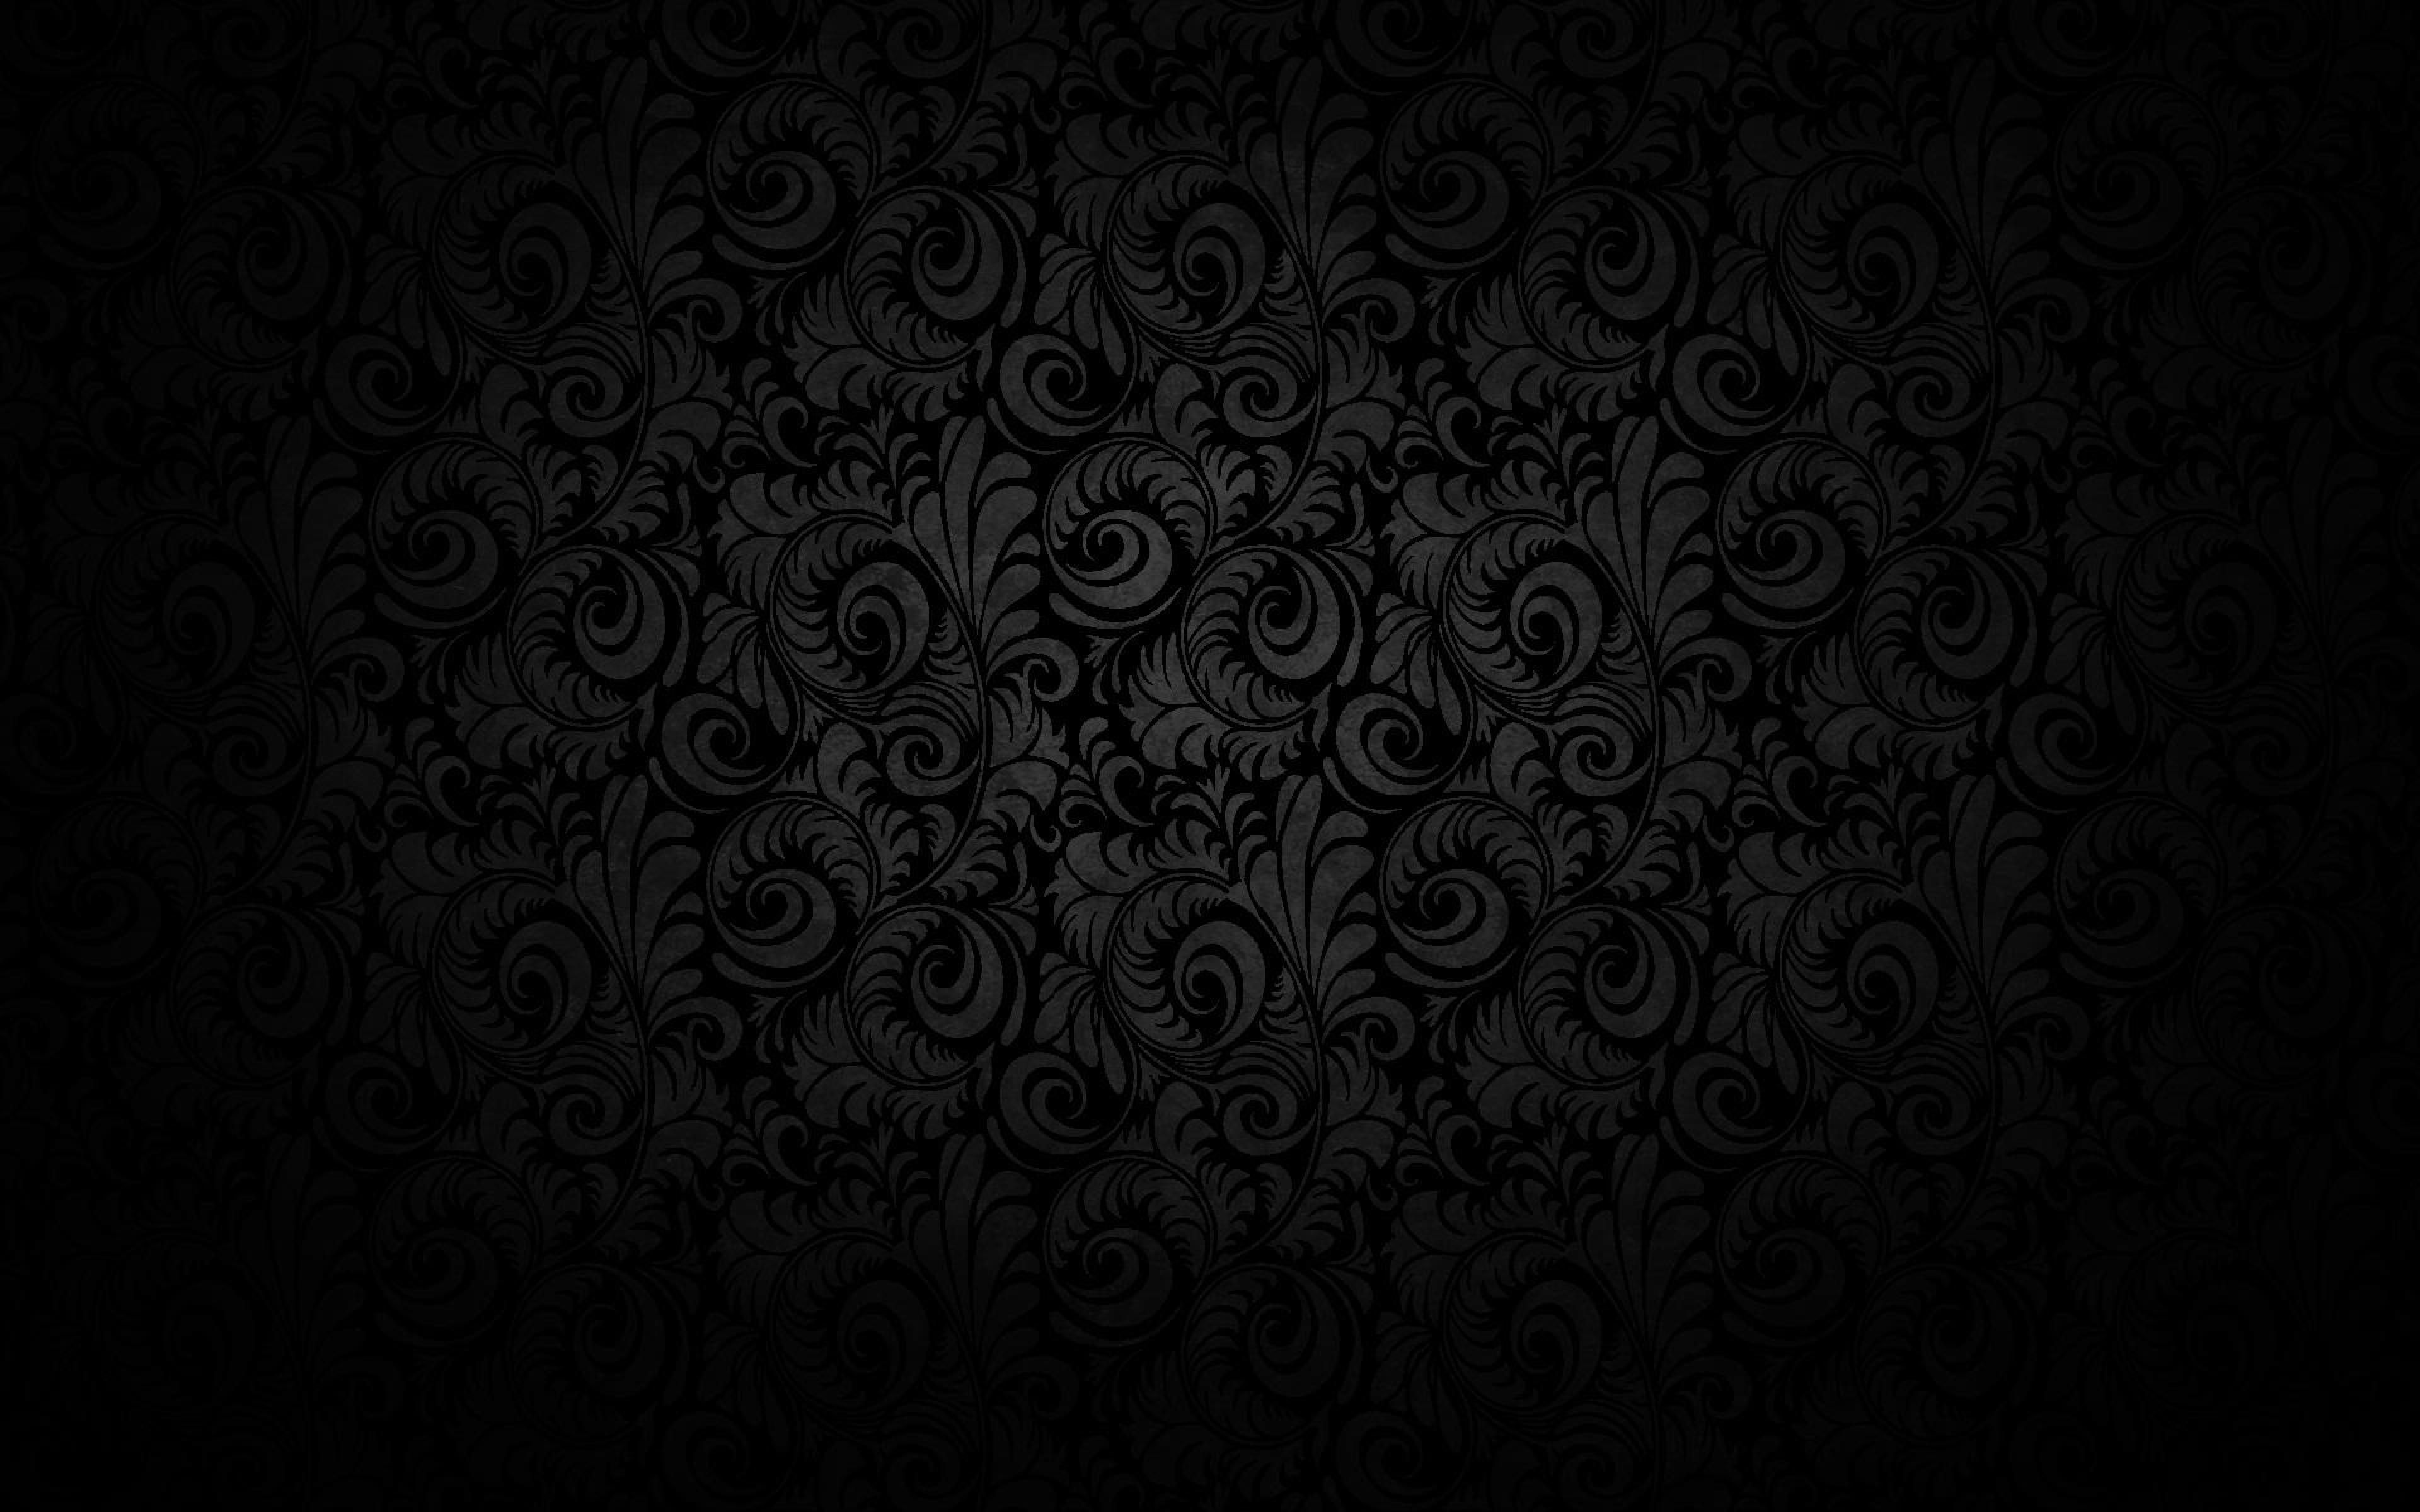 Wallpaper Darkness Posted By John Mercado